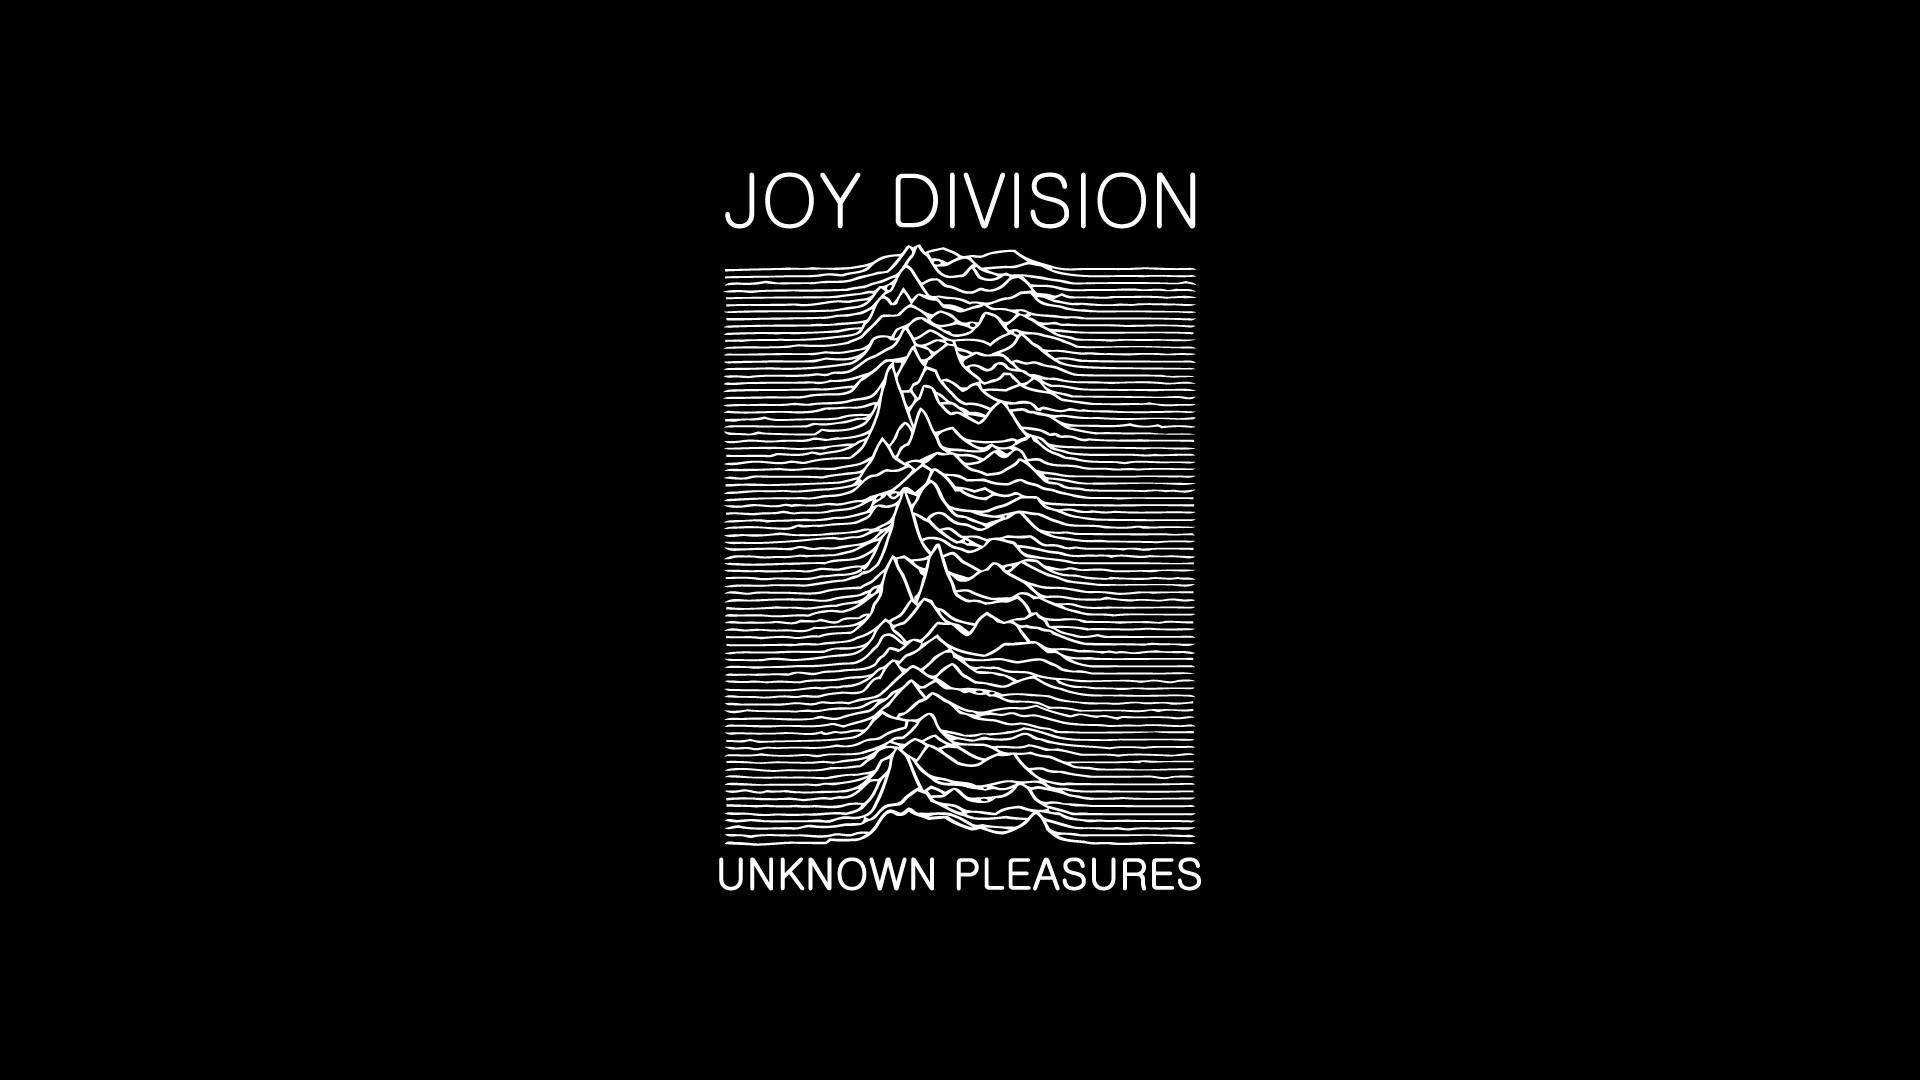 Joy Division Unknown Pleasures Wallpapers Wallpaper Cave